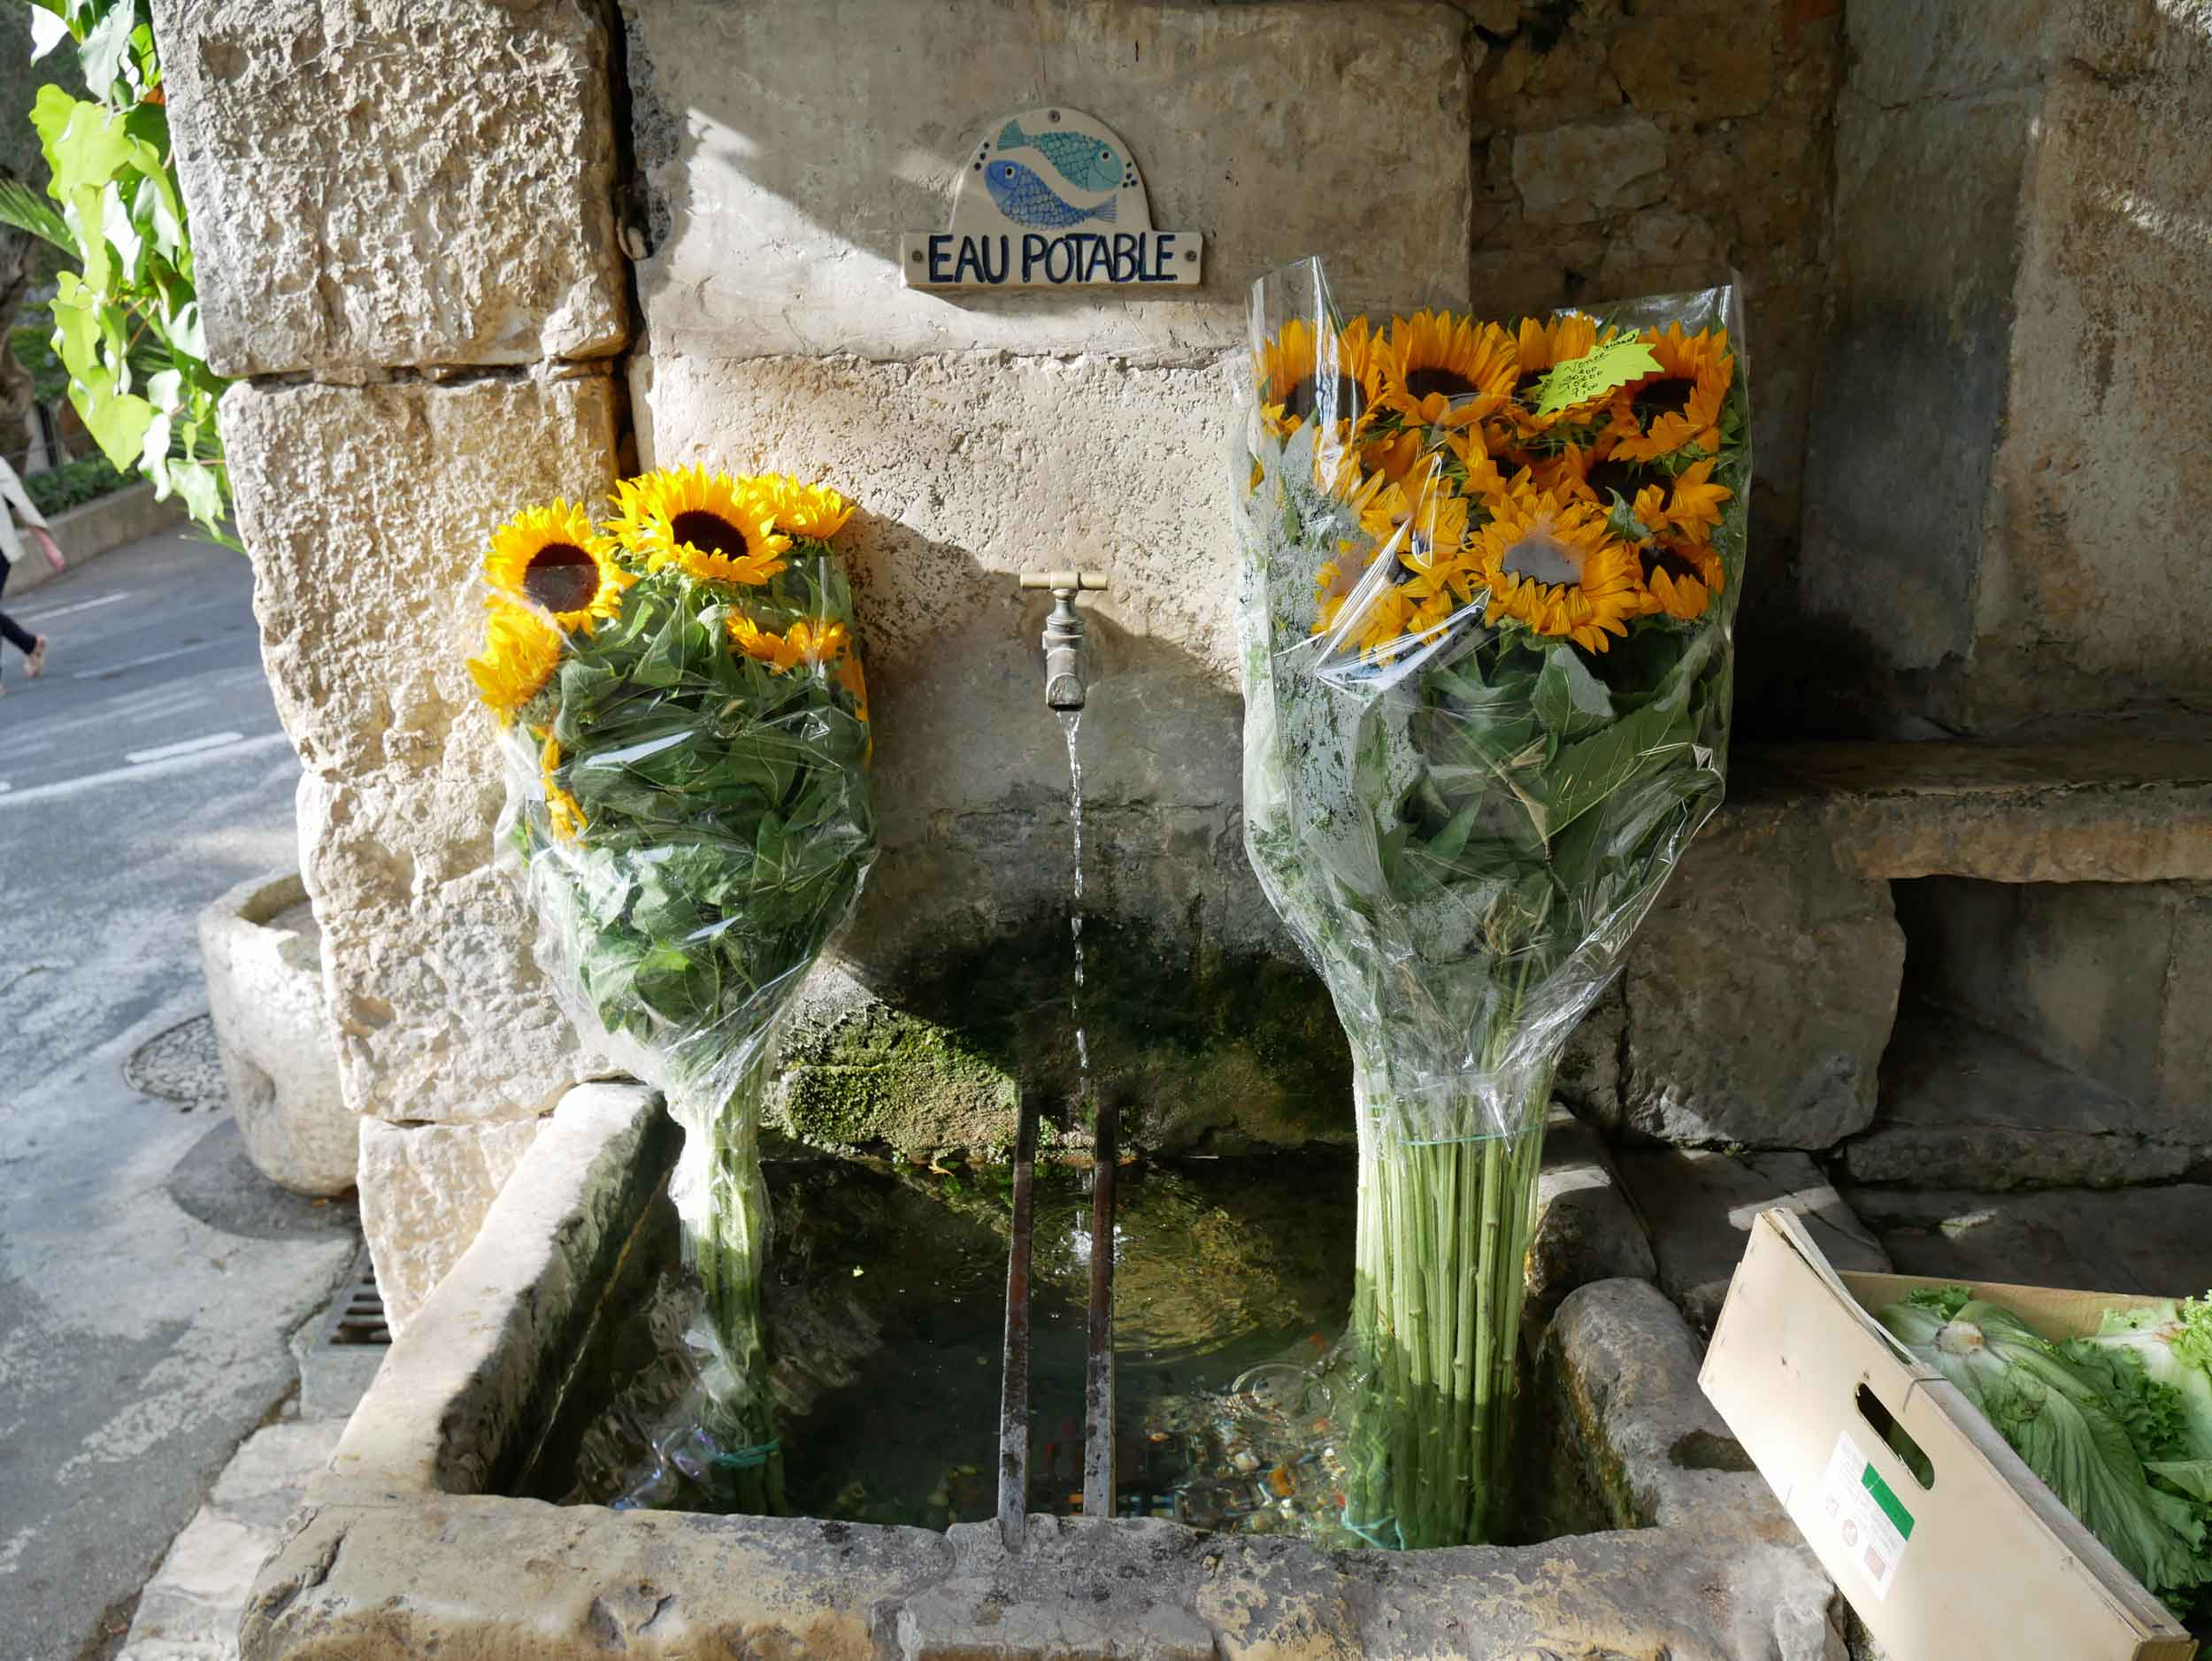 We continued to be inspired by the beauiful markets in France (St. Paul de Vence).